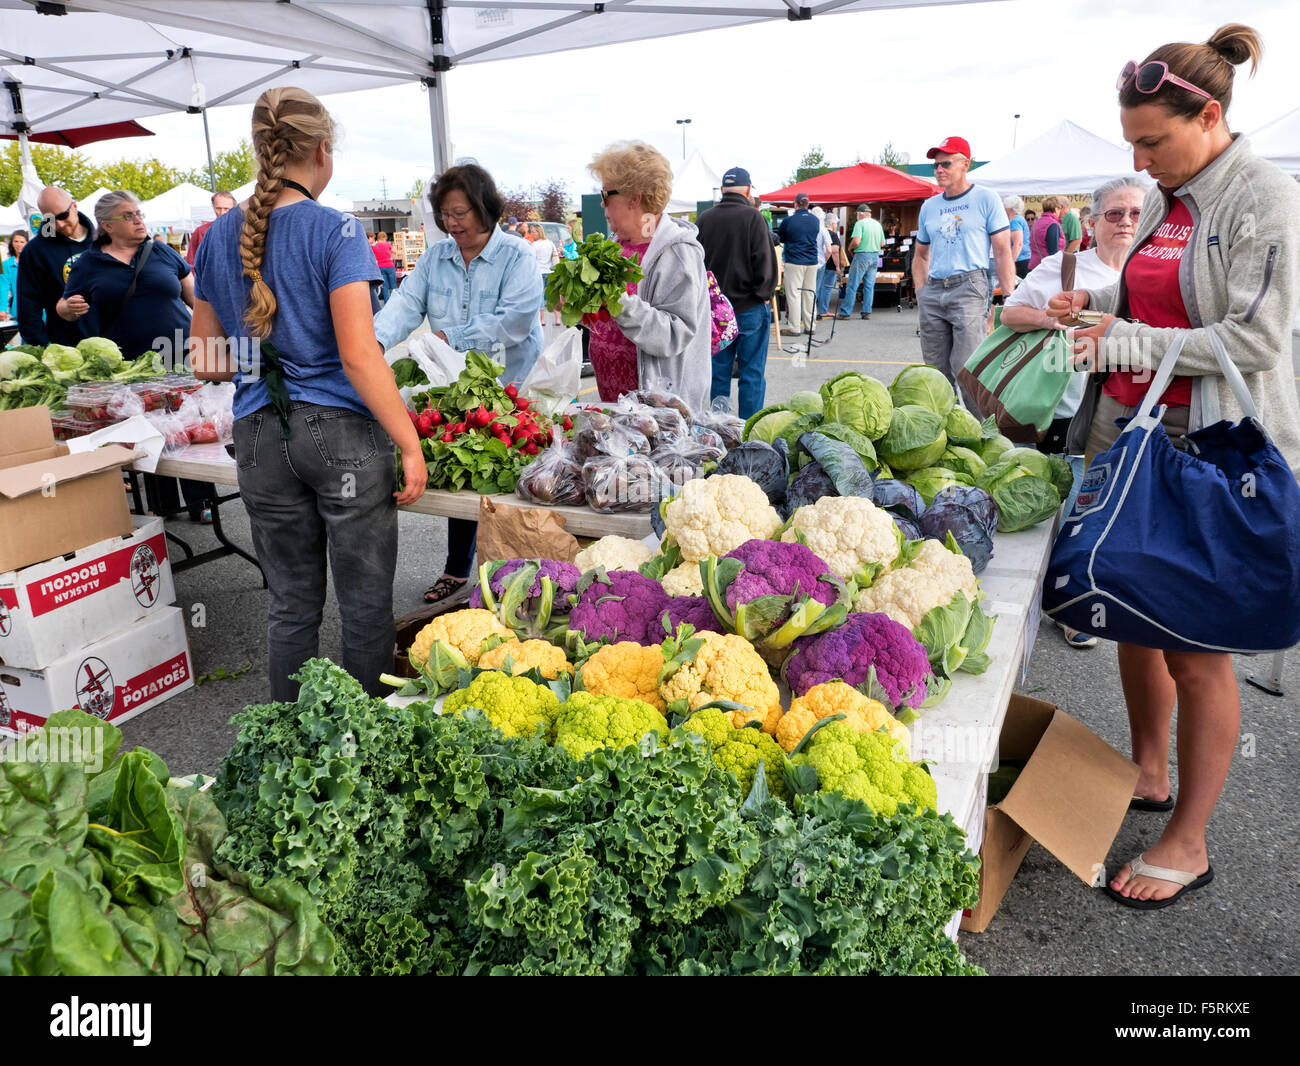 South Anchorage Farmers Market. - Stock Image